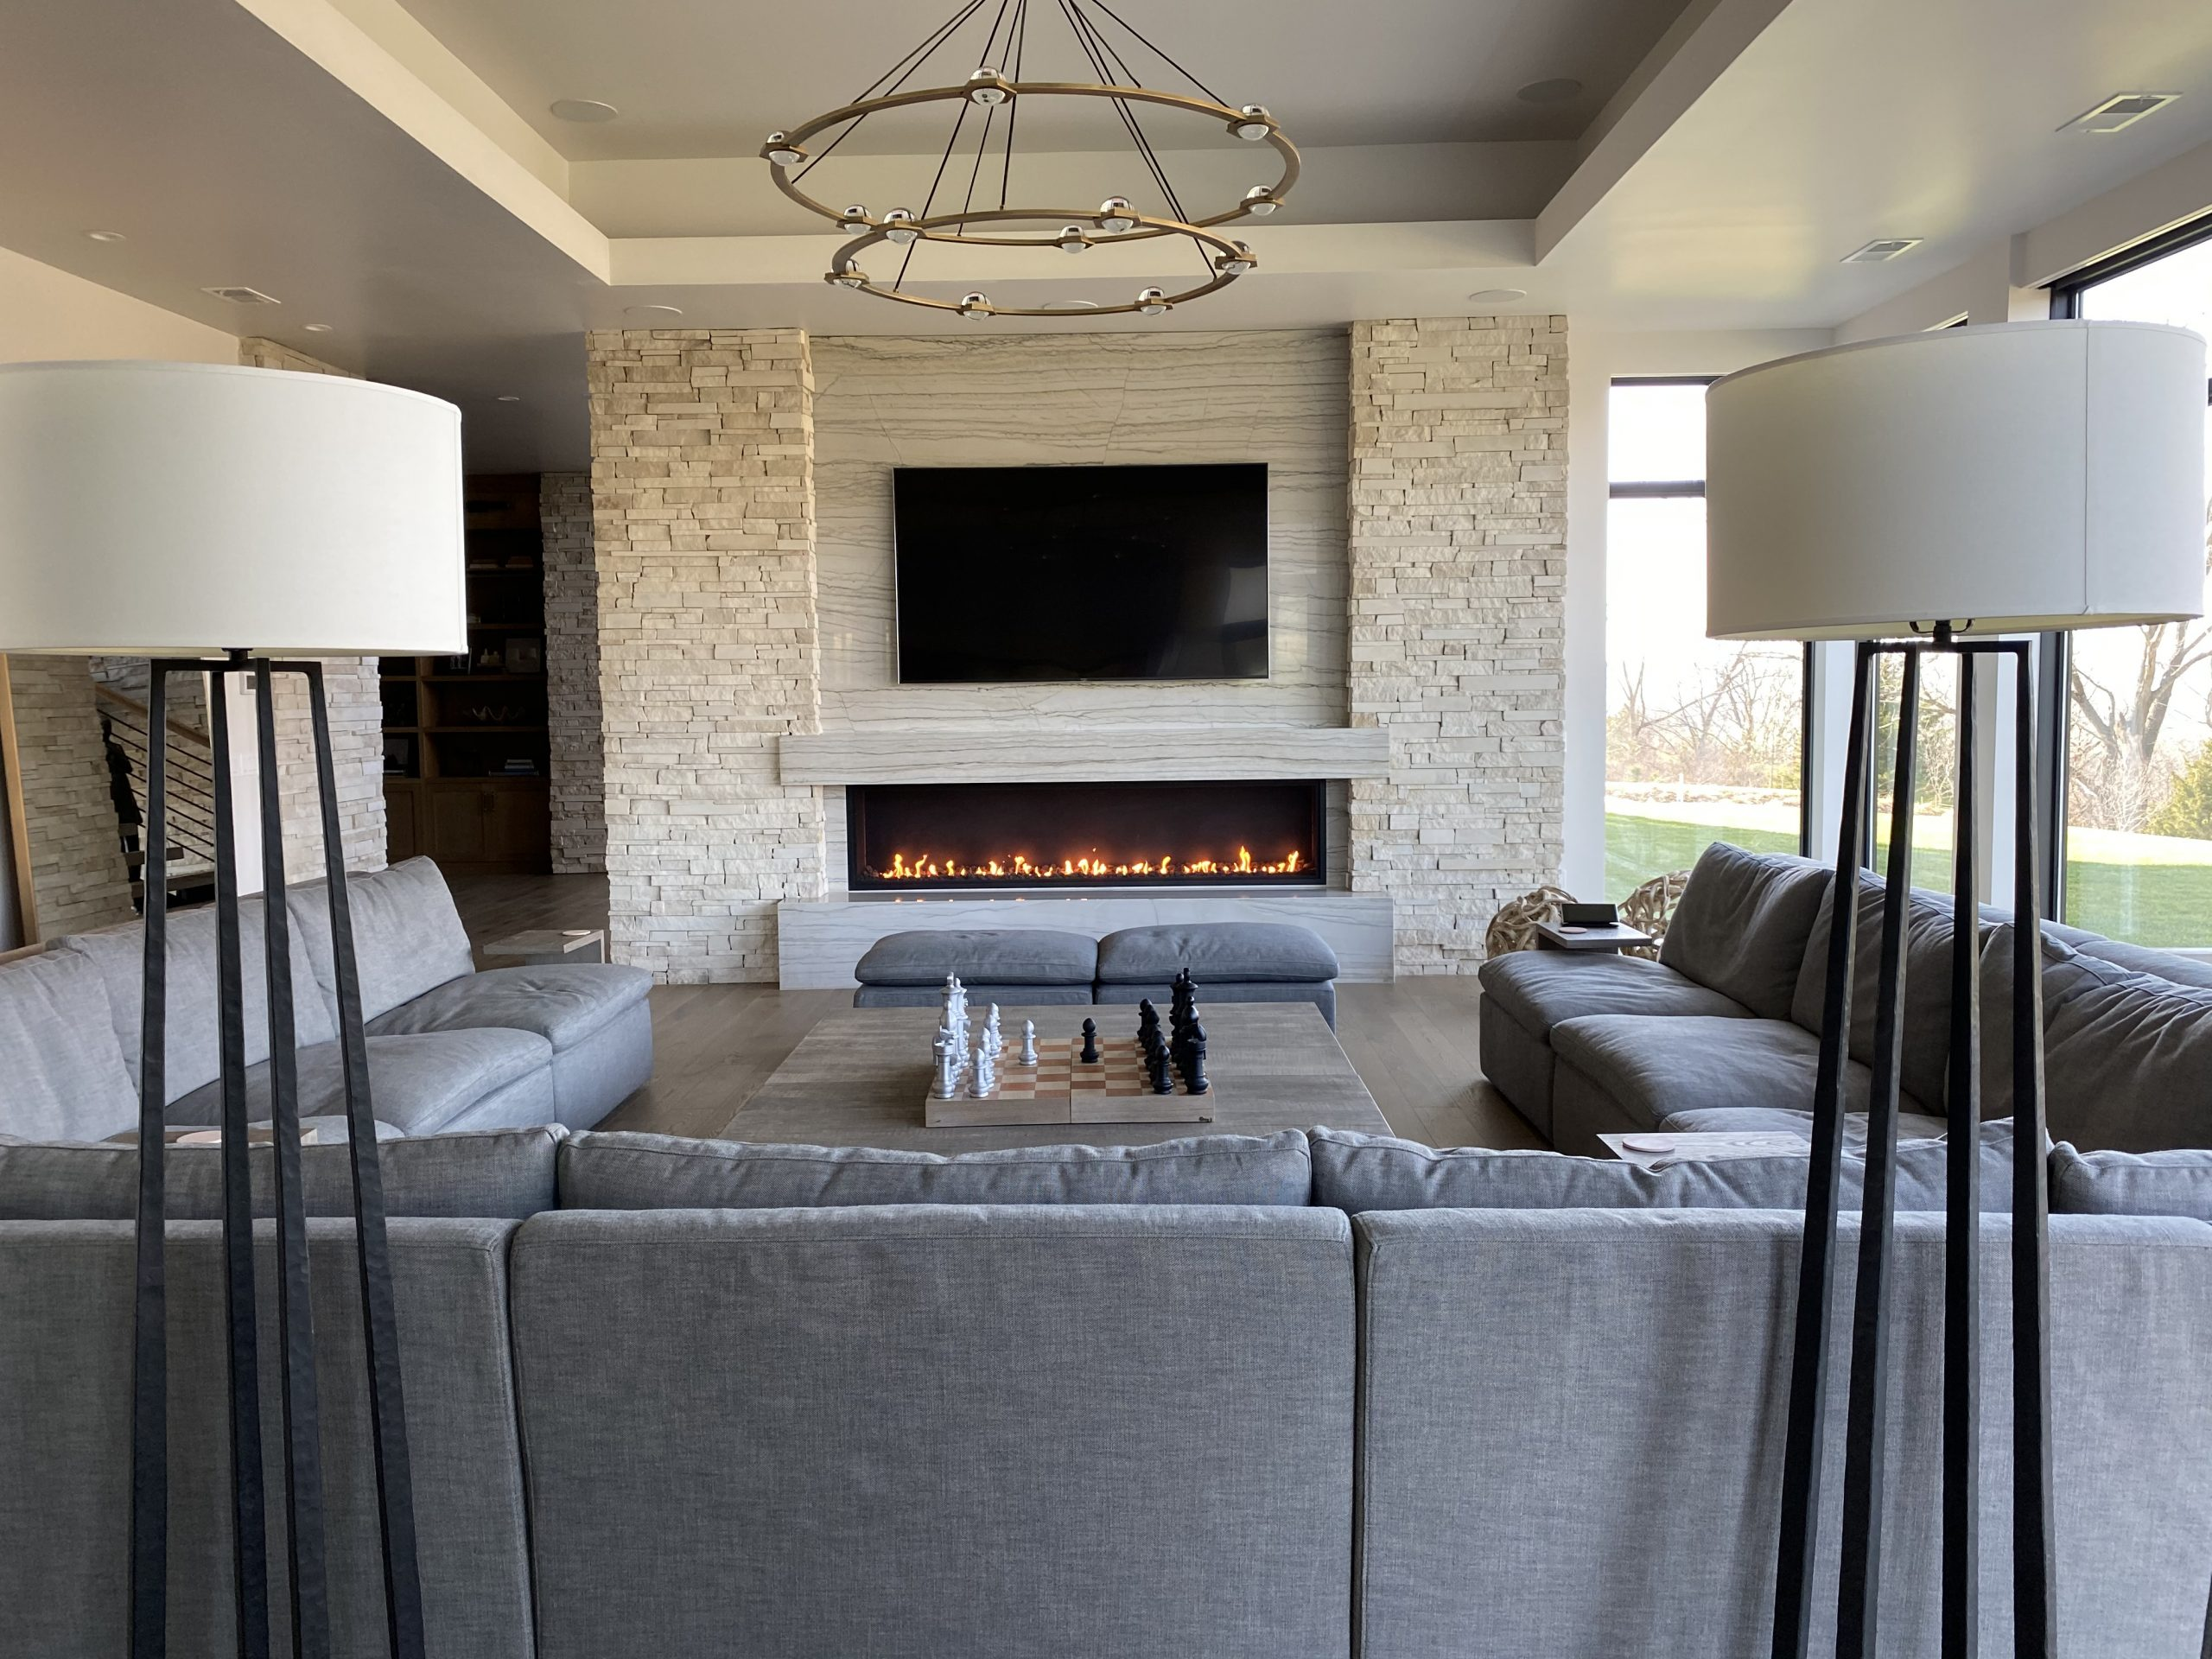 Acucraft Signature 8' Linear Open Gas Fireplace with Lava Rock (5)